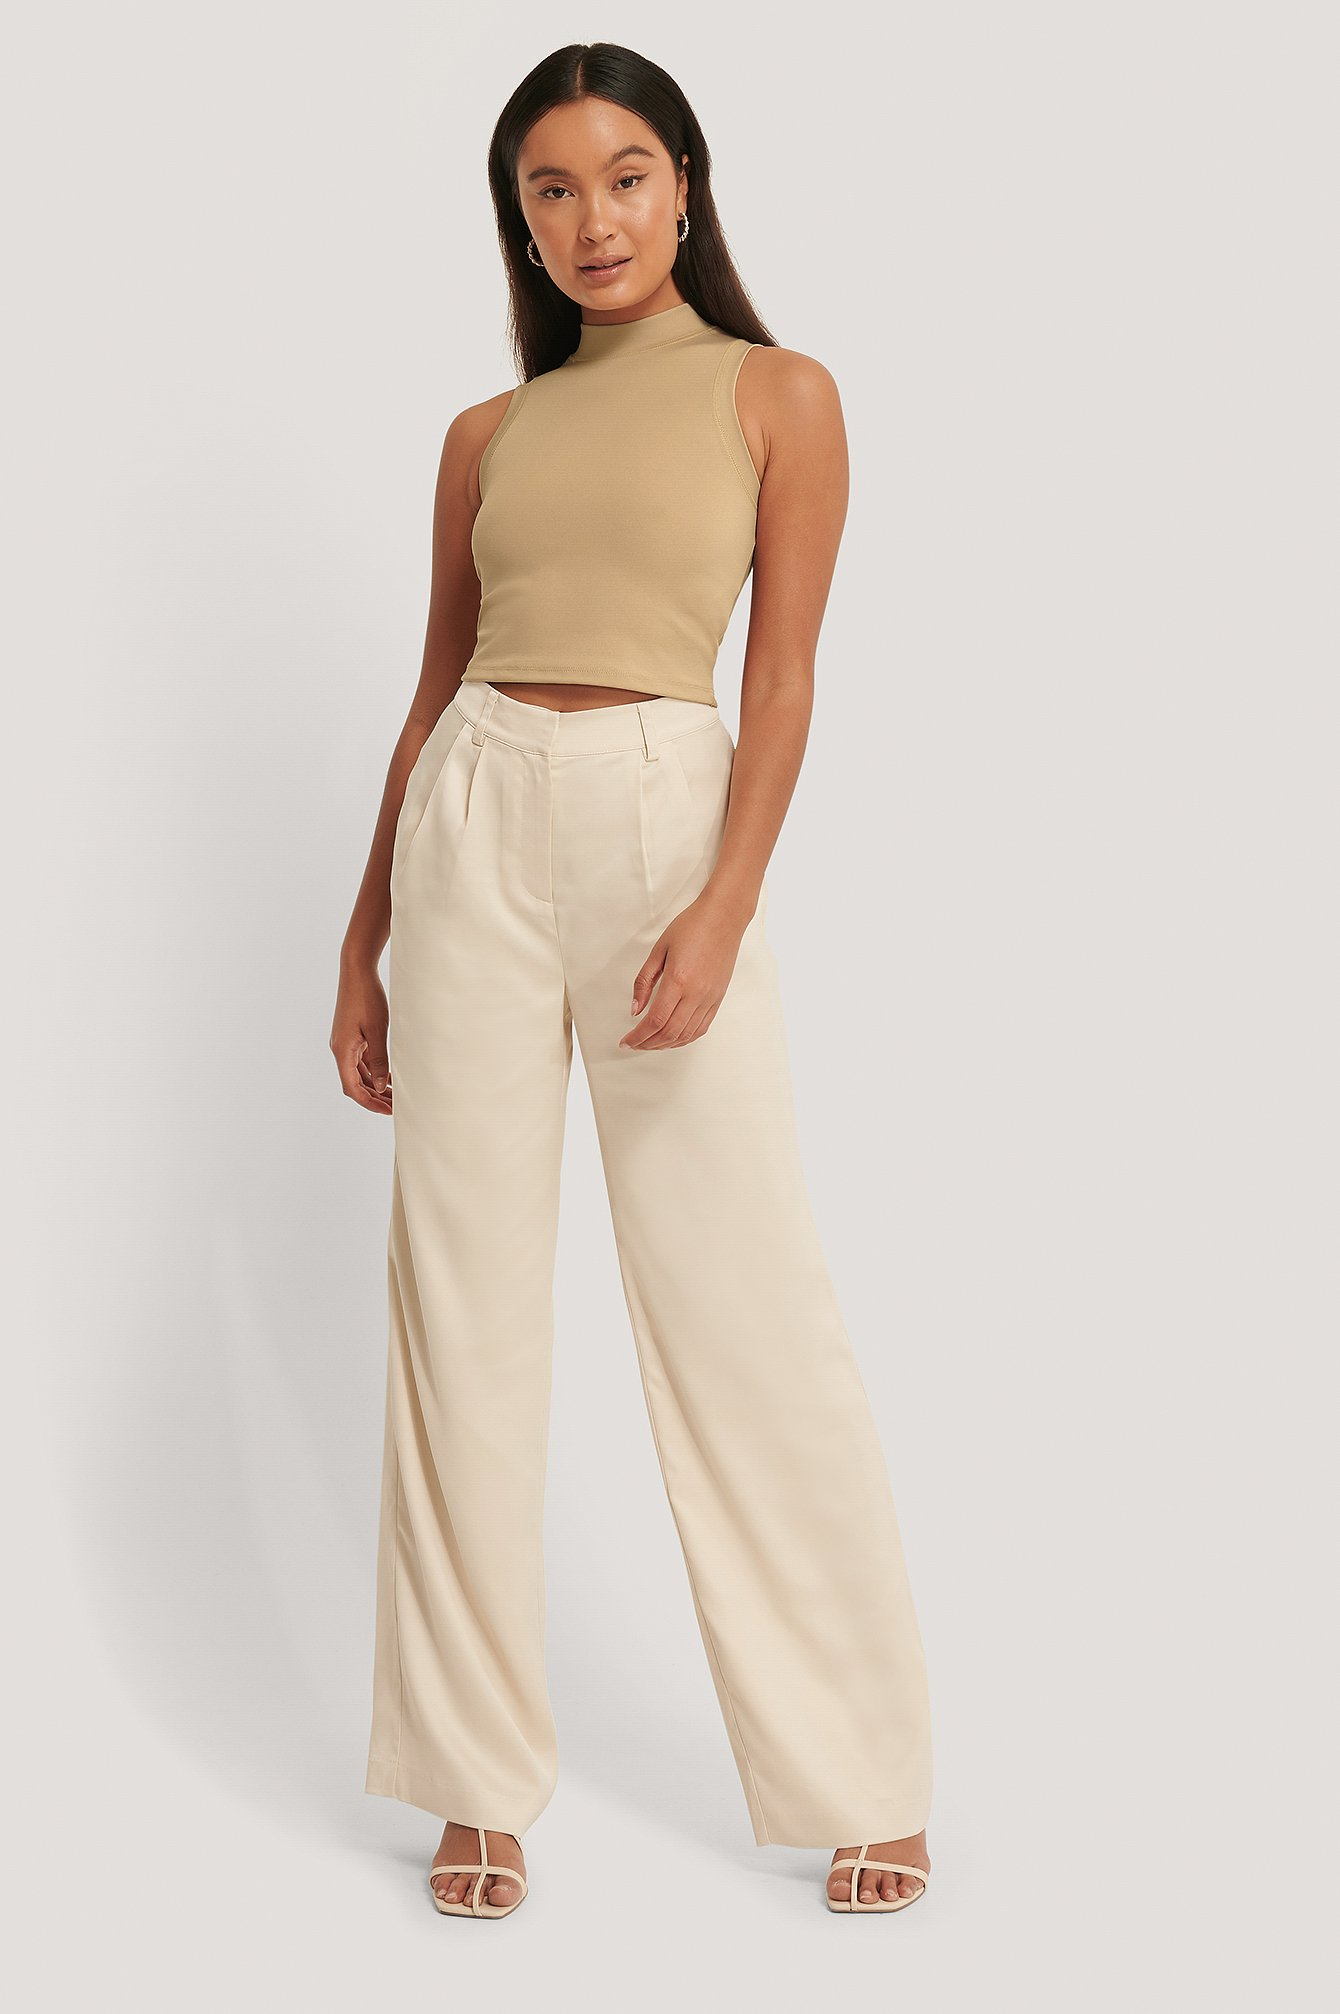 Bed J.w. Ford STRAIGHT SATIN PANTS - BEIGE